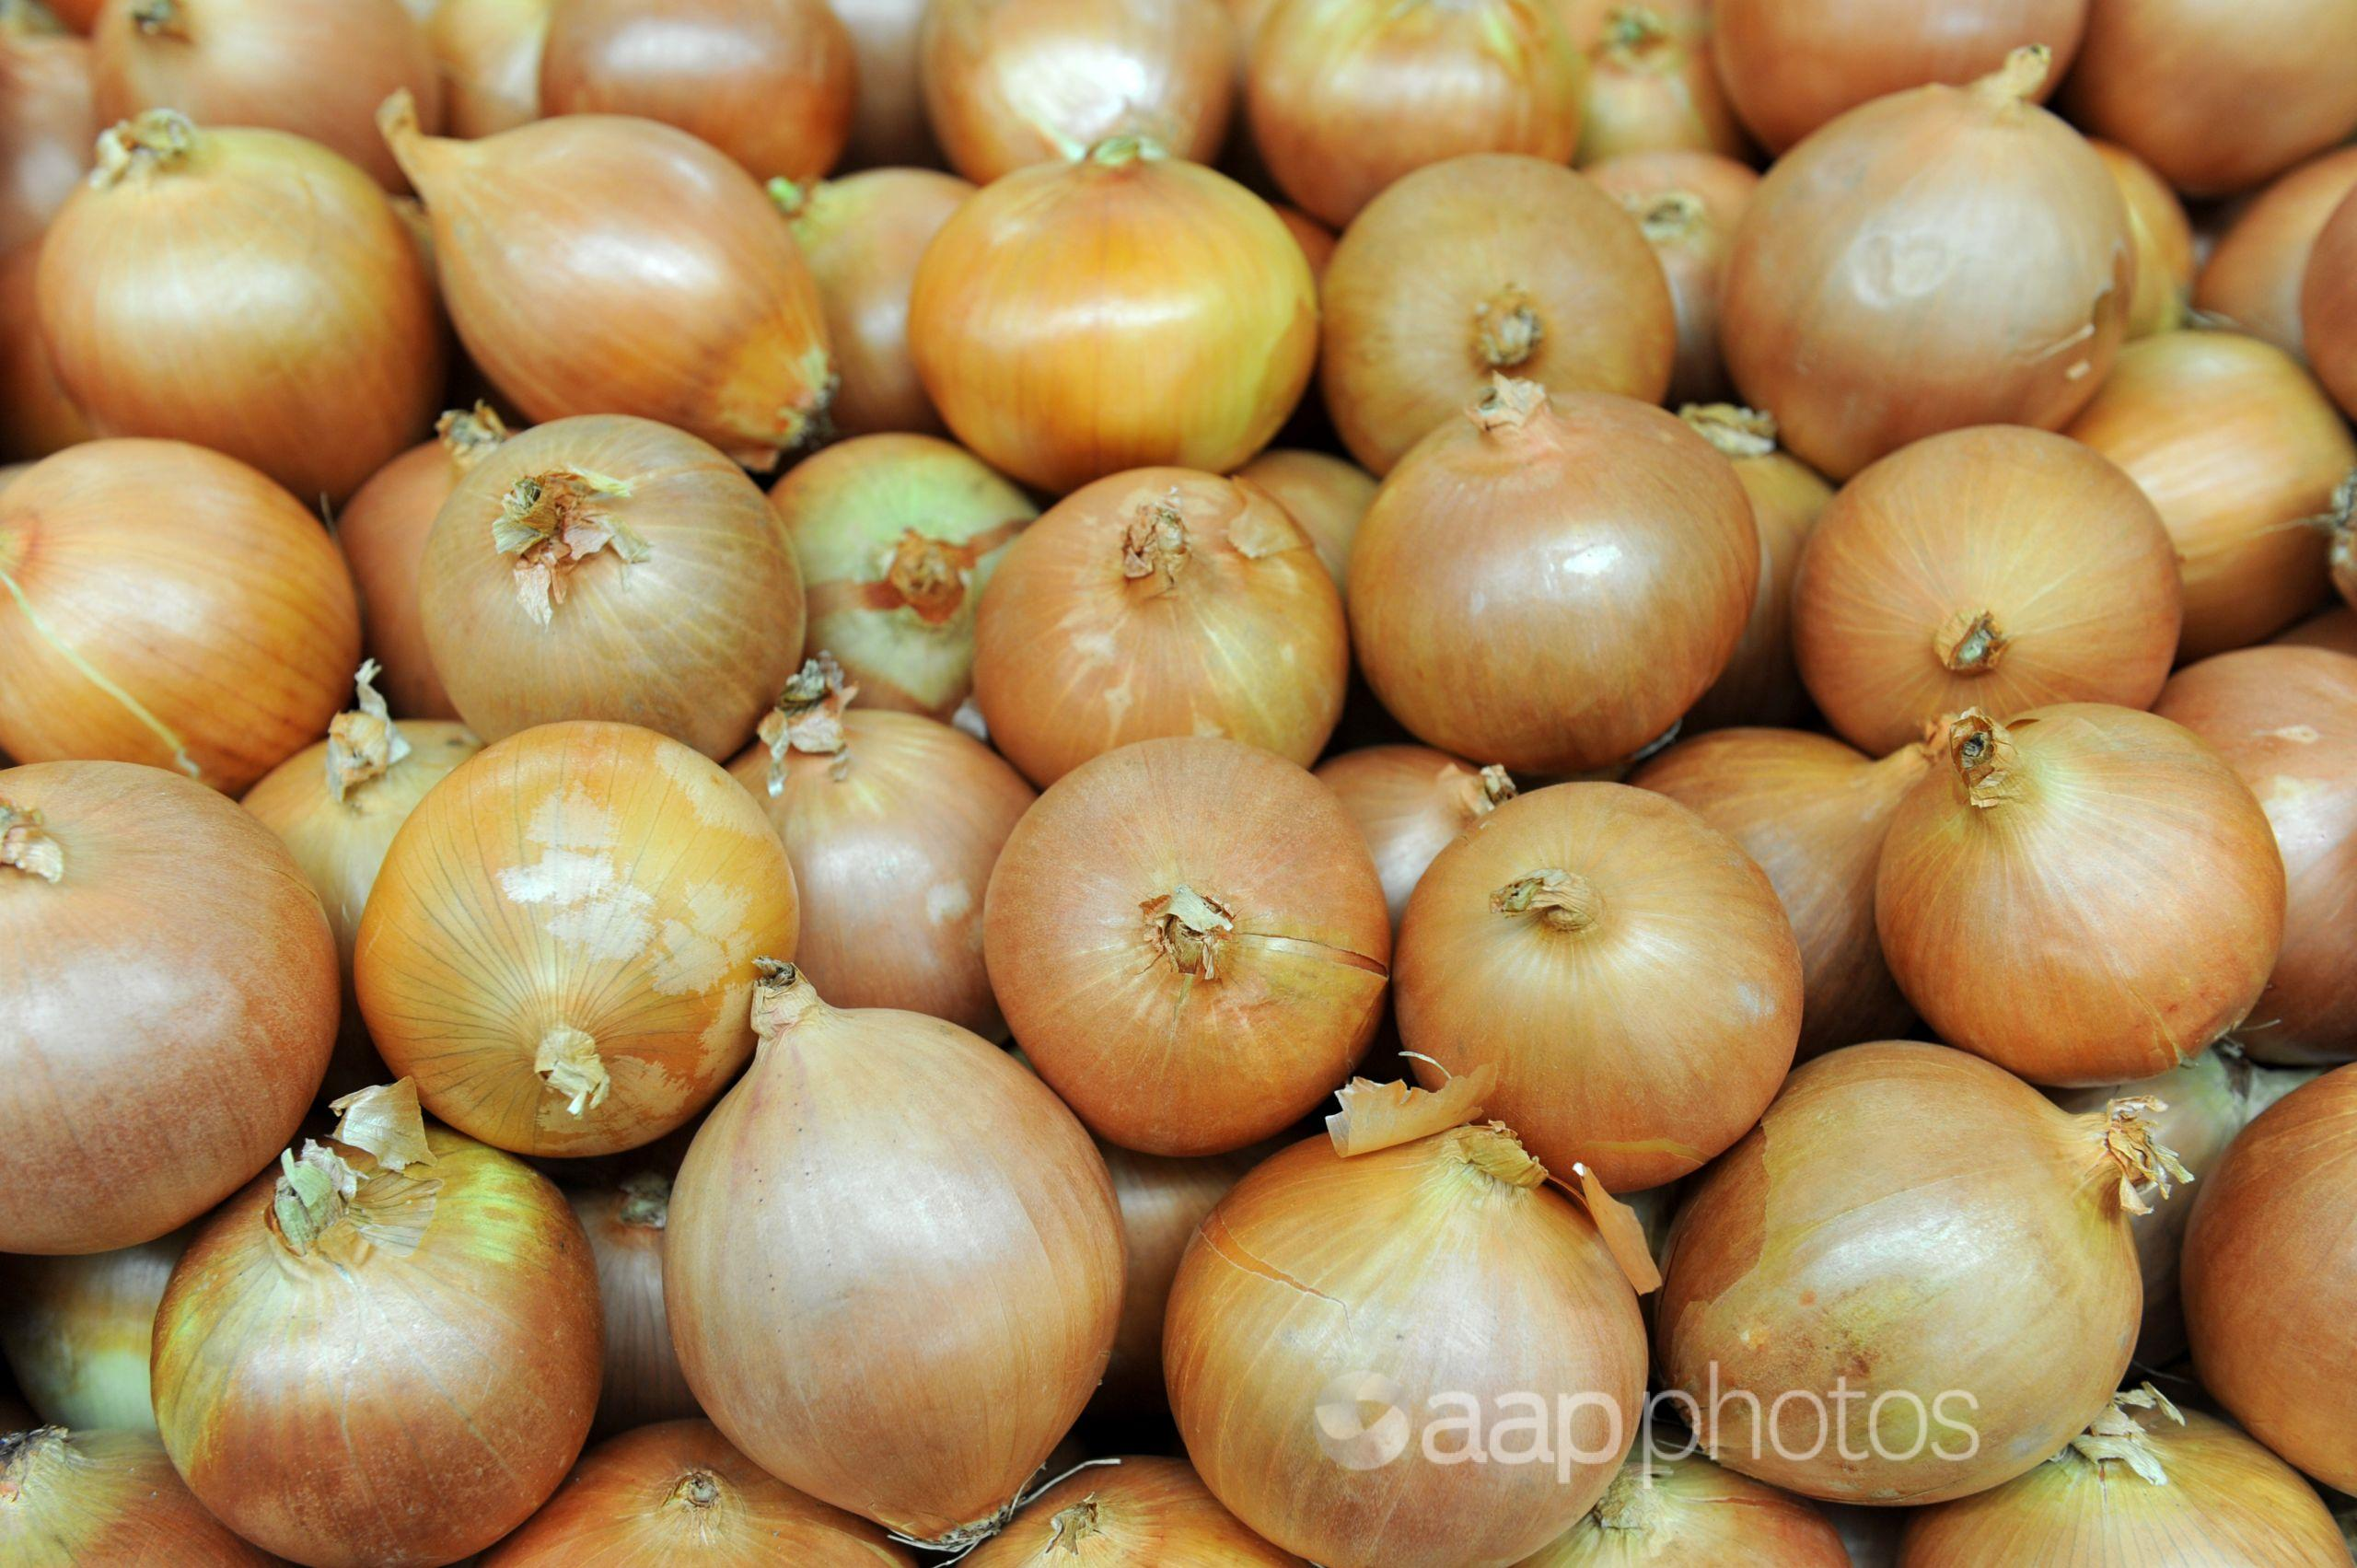 White onions sit on a stall at a store.